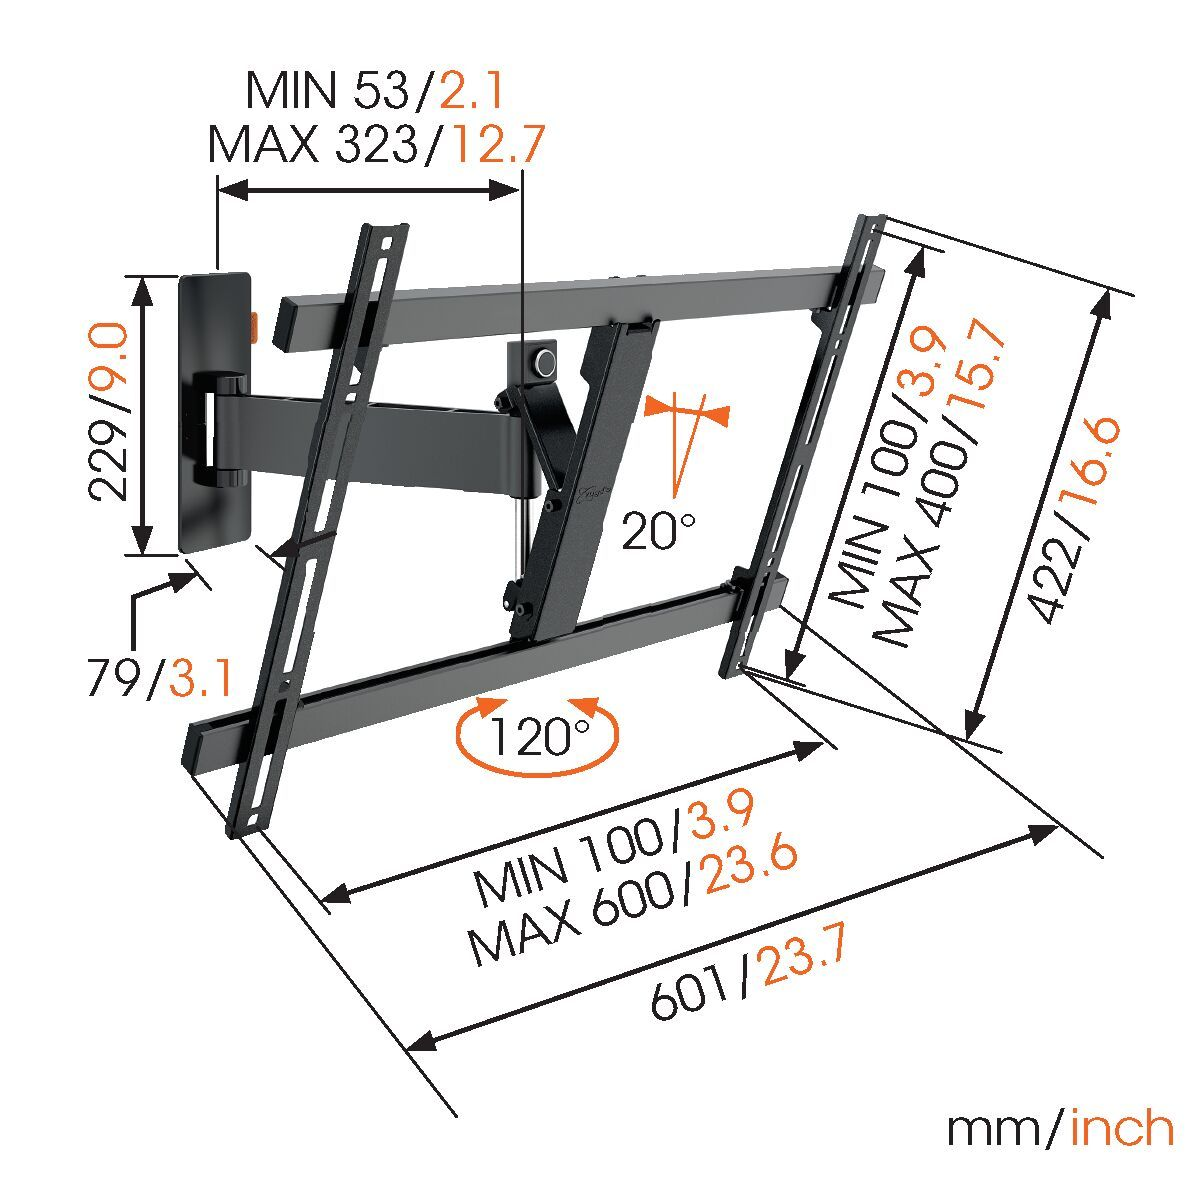 Vogel's WALL 3325 Full-Motion TV Wall Mount - Suitable for 40 up to 65 inch TVs - Motion (up to 120°) - Tilt up to 20° - Dimensions